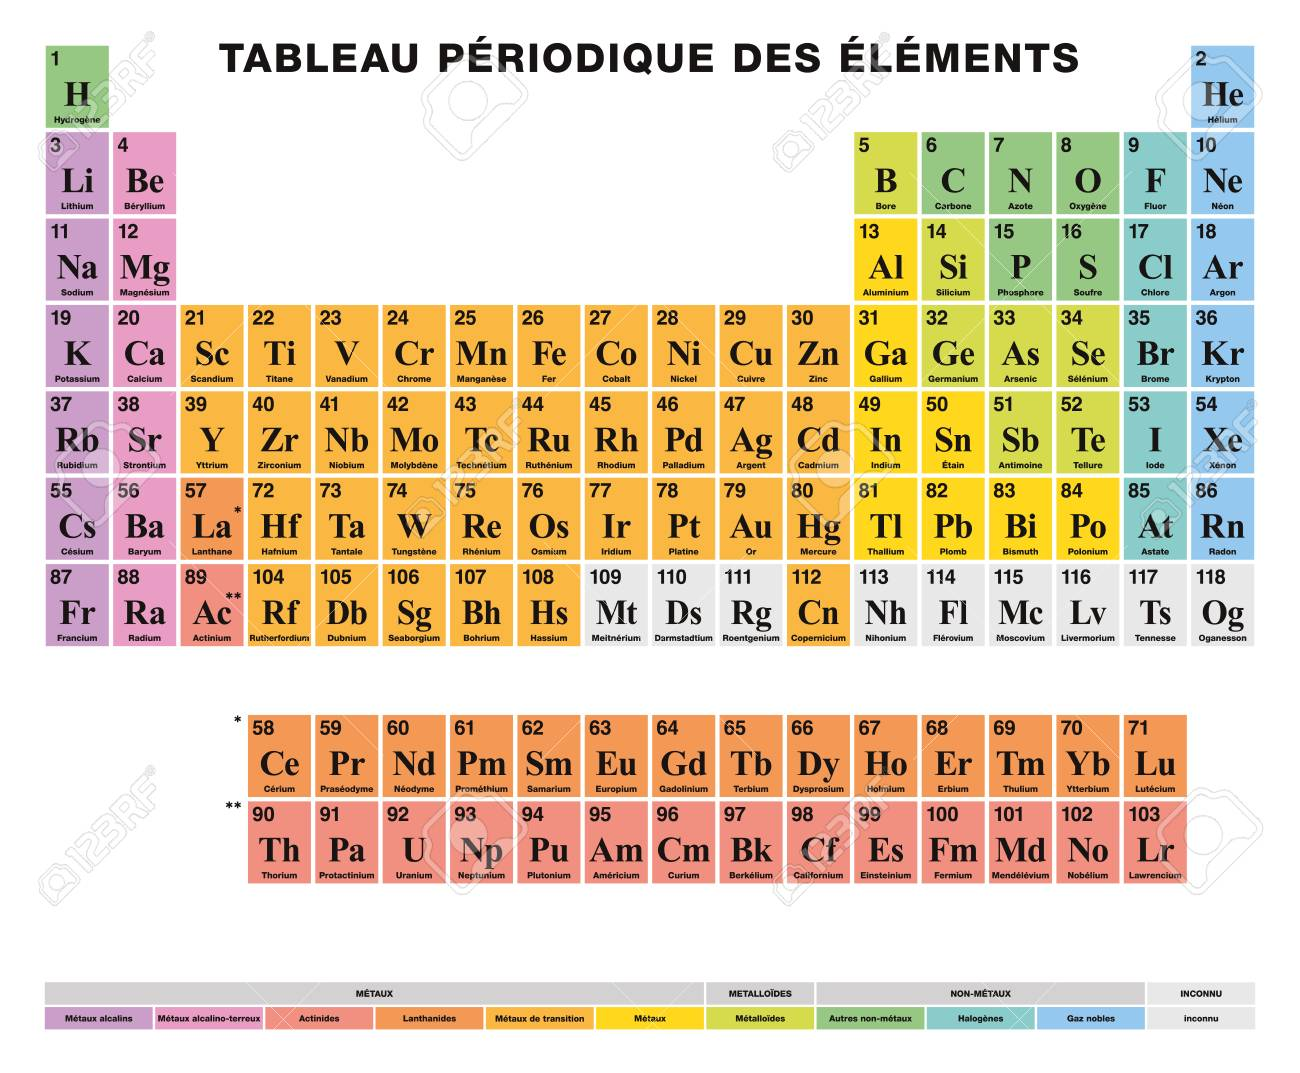 Periodic table of the elements french labeling tabular arrangement periodic table of the elements french labeling tabular arrangement of 118 chemical elements urtaz Image collections